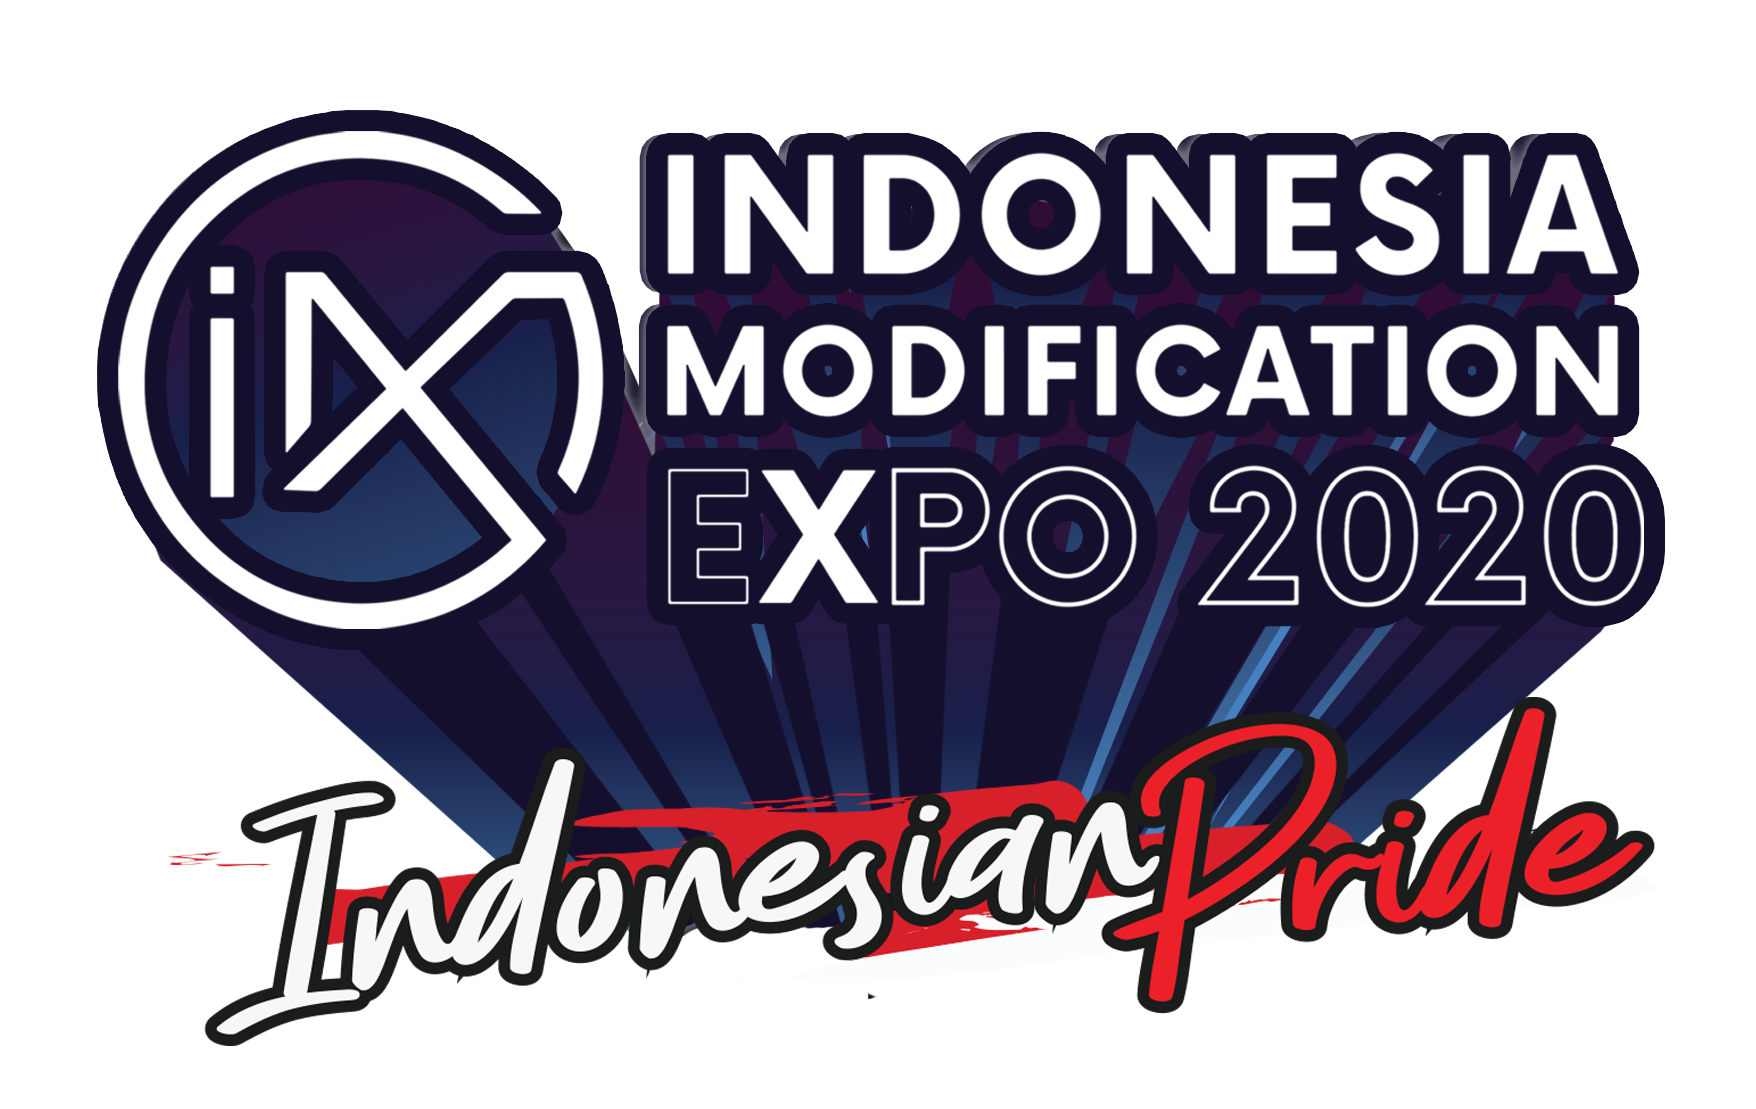 Indonesia Modification Expo